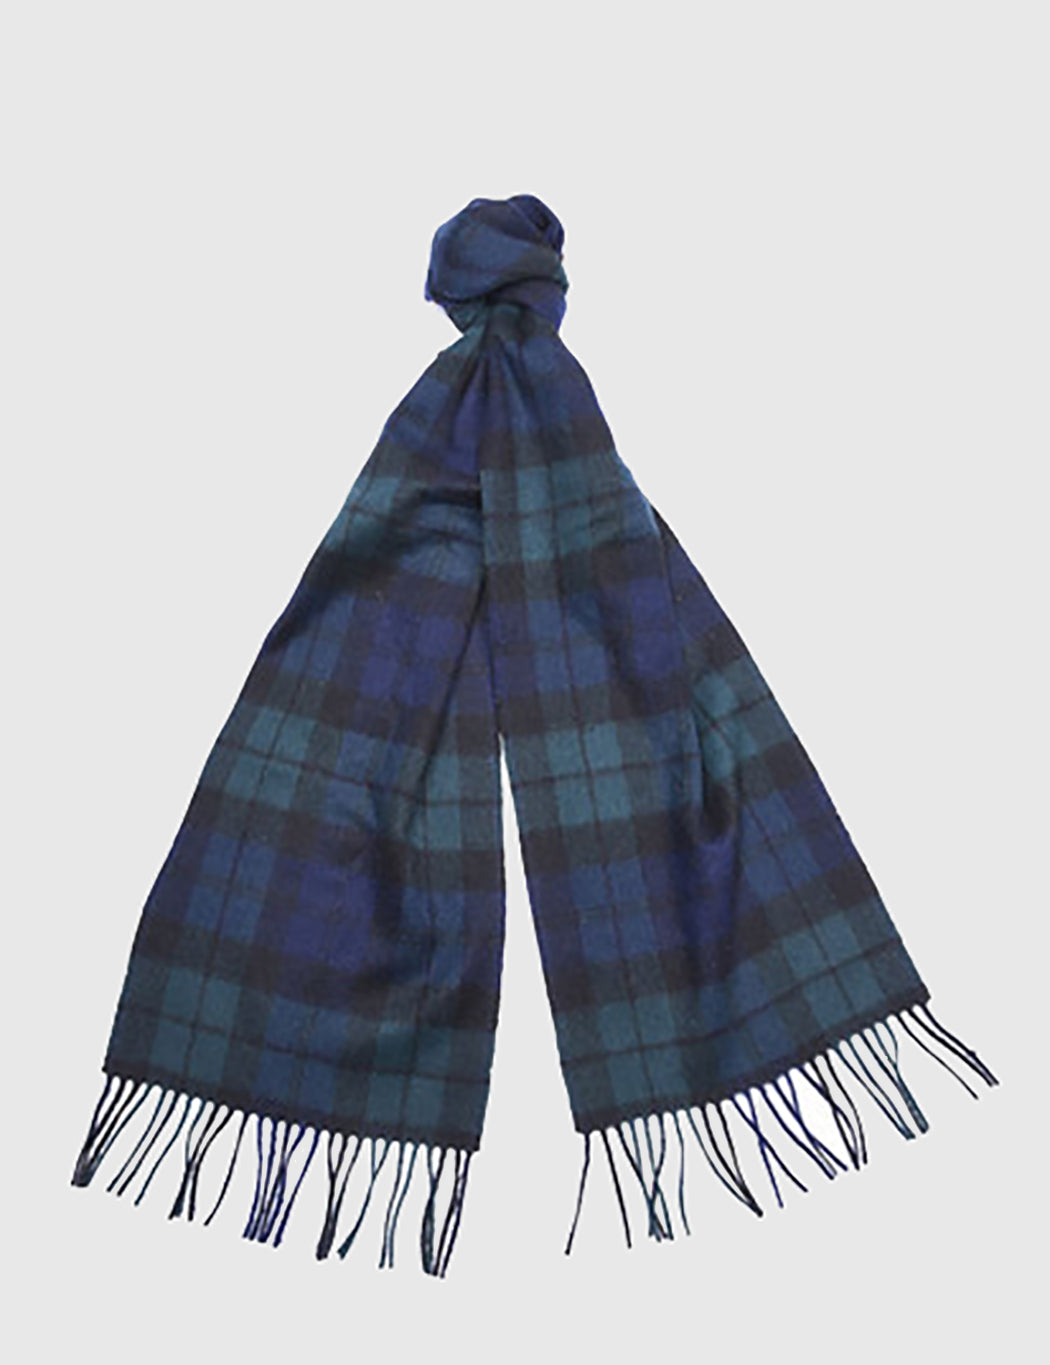 Barbour New Check Tartan Scarf - Black Watch | URBAN EXCESS.